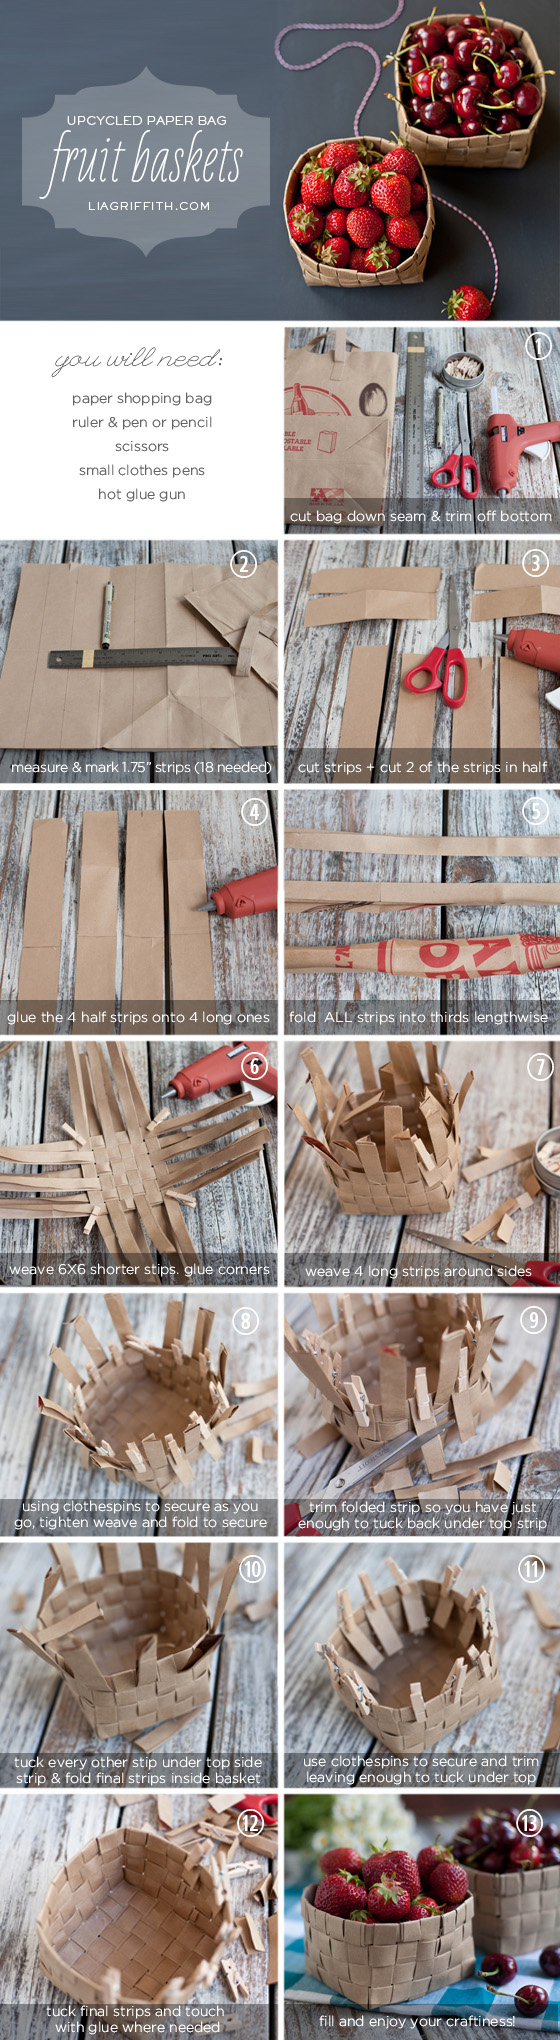 DIY step by step photo tutorial for upcycled grocery bag fruit basket by Lia Griffith